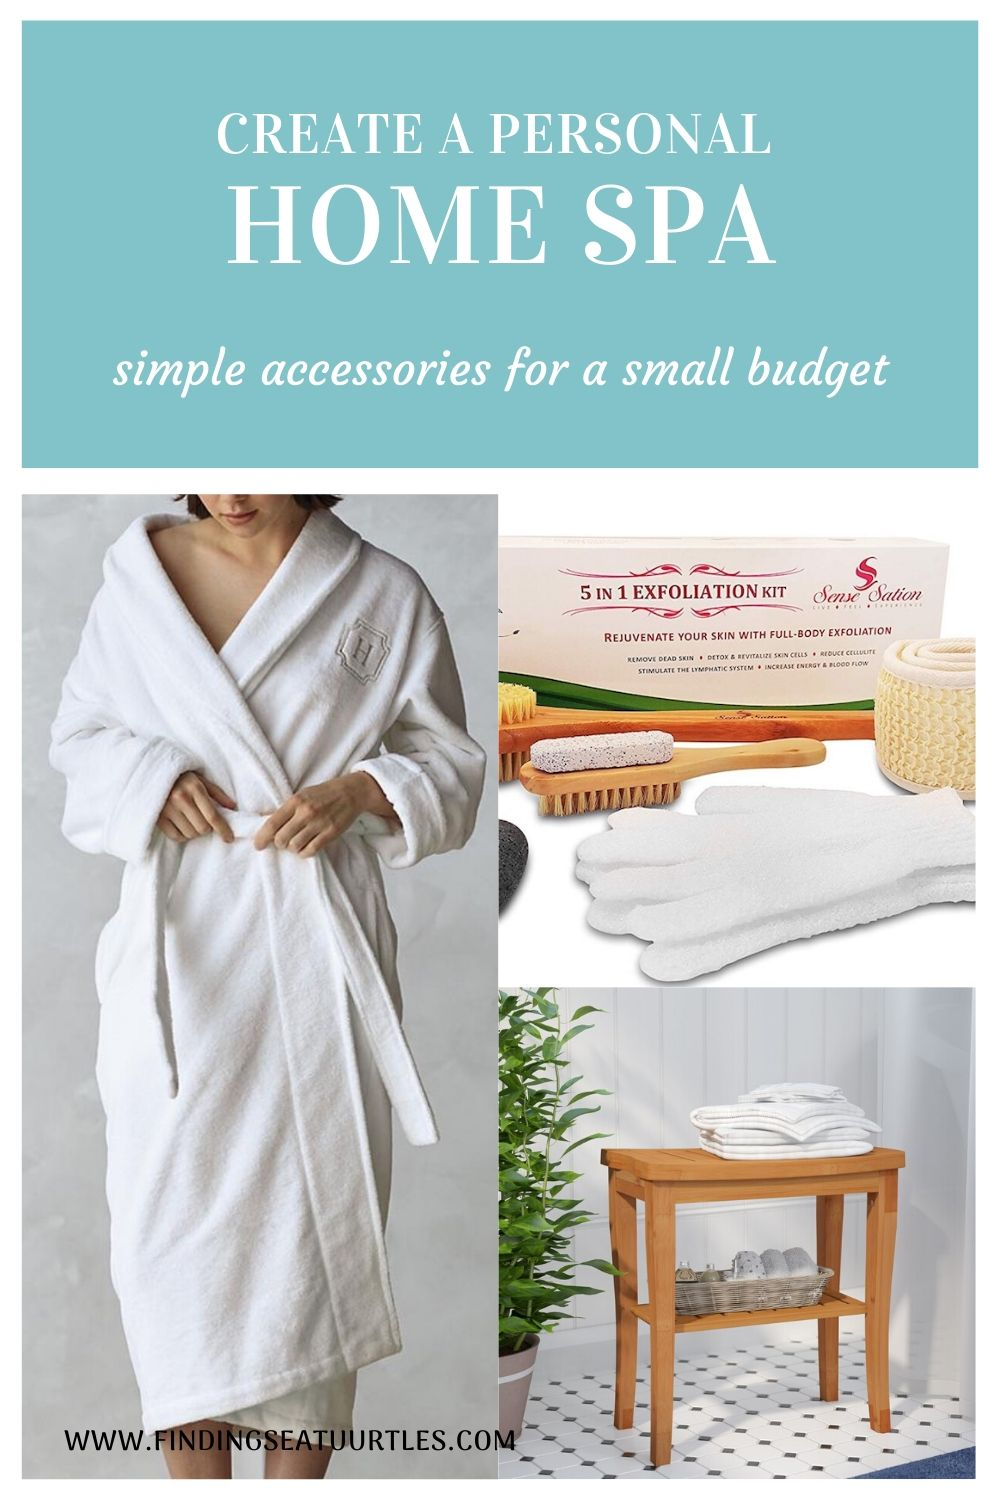 Create a Personal Home Spa simple accessories for a small budget #Spa #bathroom #HomeSpa #PamperYourself #SpaAccessories #MeTime #BathSpa #DIYHomeSpa #Relax #Soothing